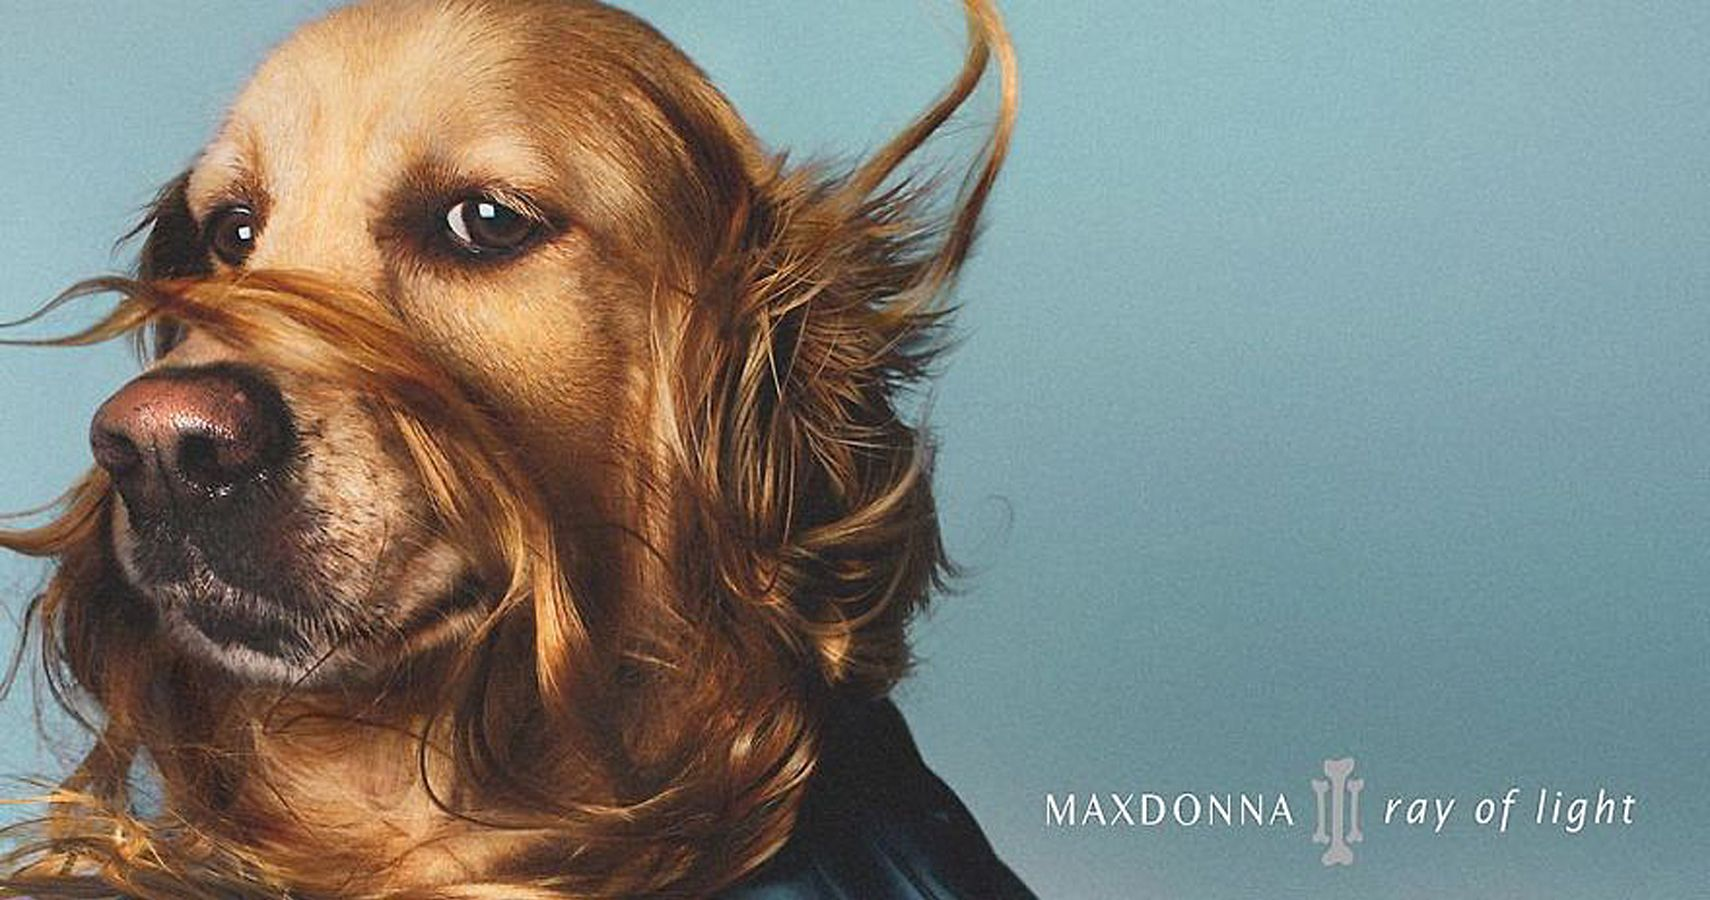 Madonna's Iconic Pictures Recreated - By A Canine